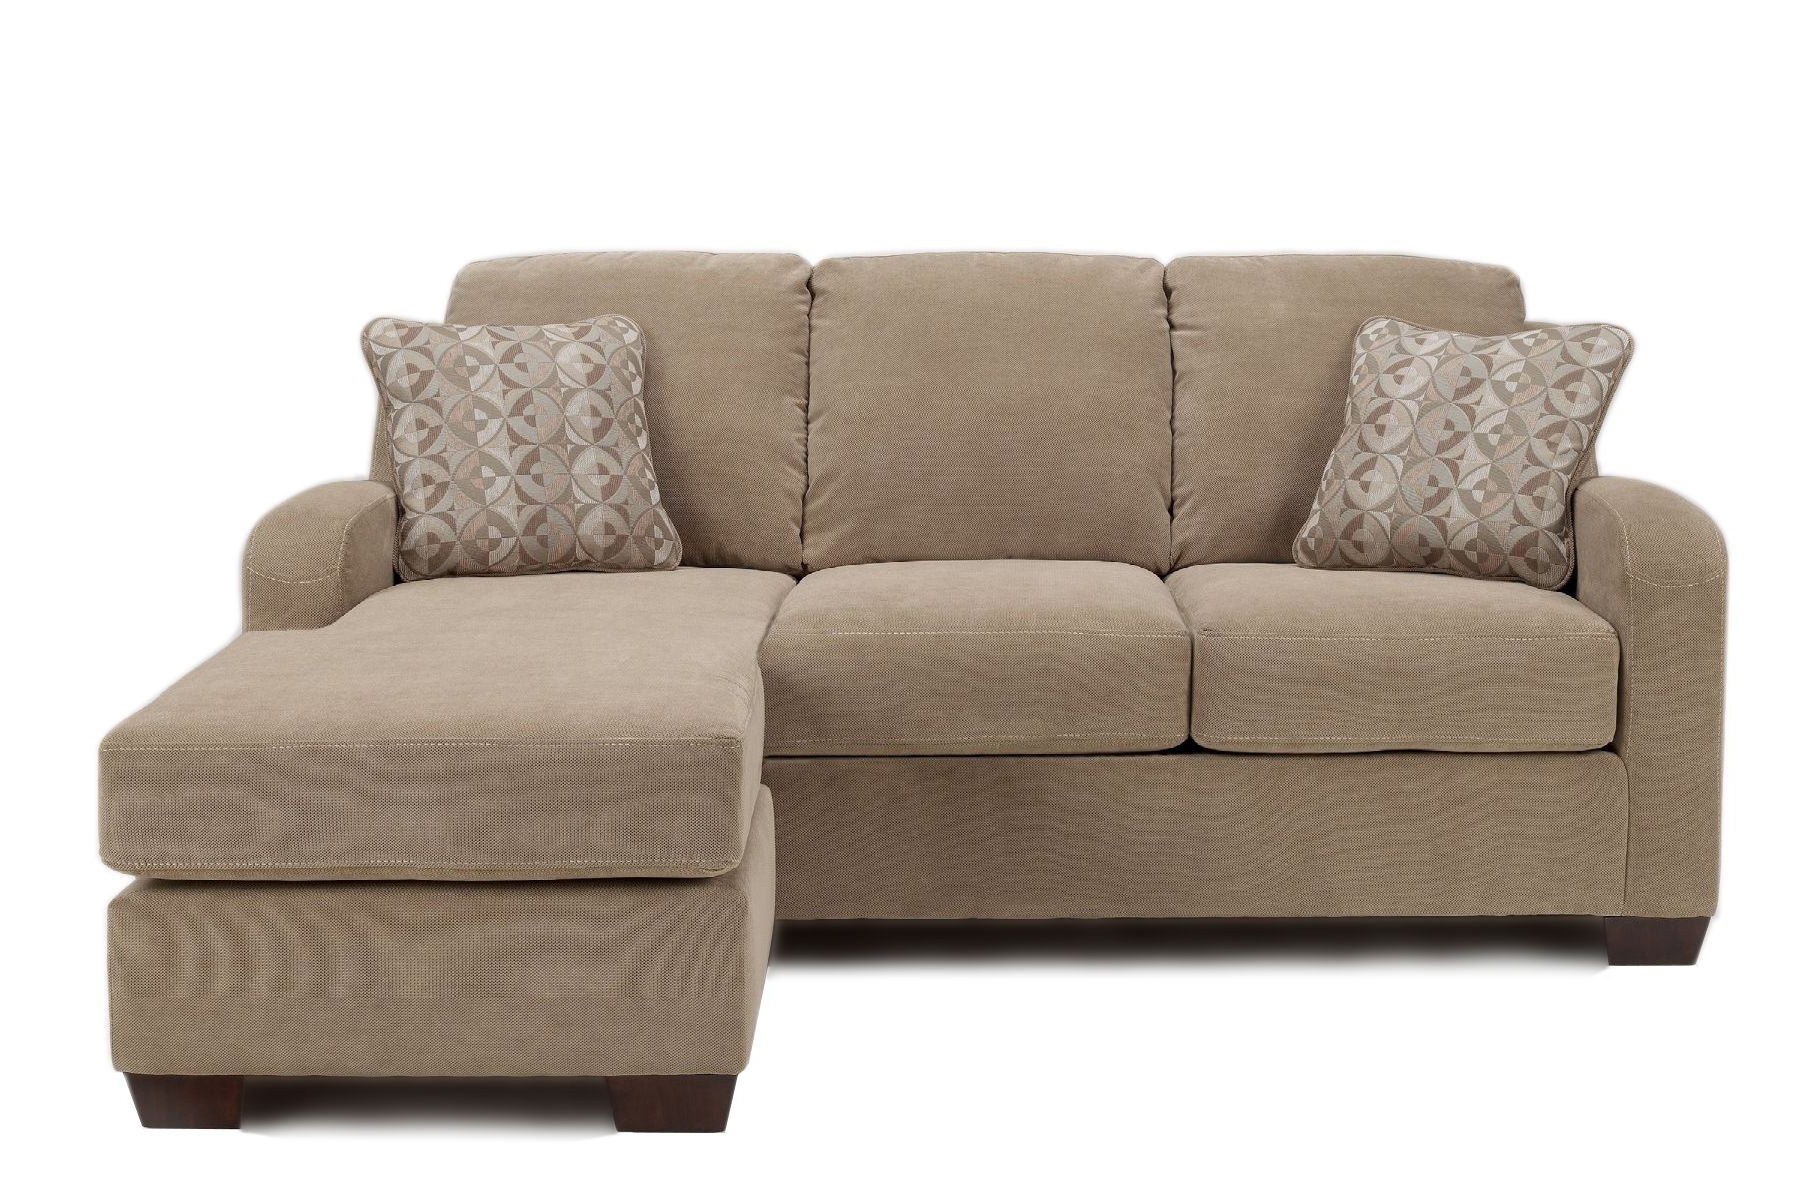 Armchair : Chaise Lounge Sleeper Sofa Hide A Bed Sofa' Sofa Come For Widely Used Mathis Brothers Chaise Lounge Chairs (View 1 of 15)